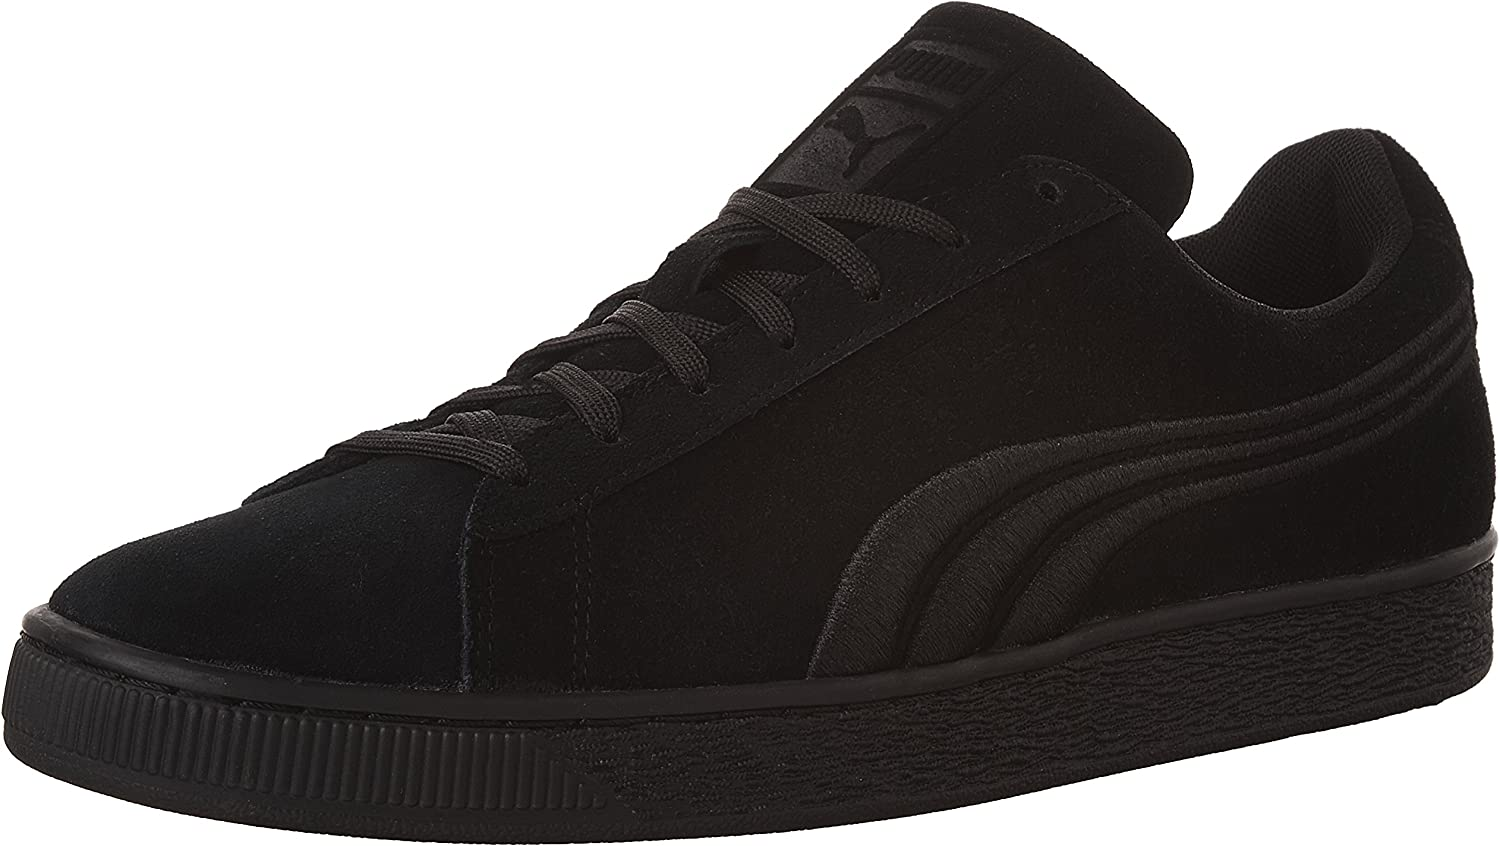 PUMA Unisex-Adult Suede Classic Badge Sneakers